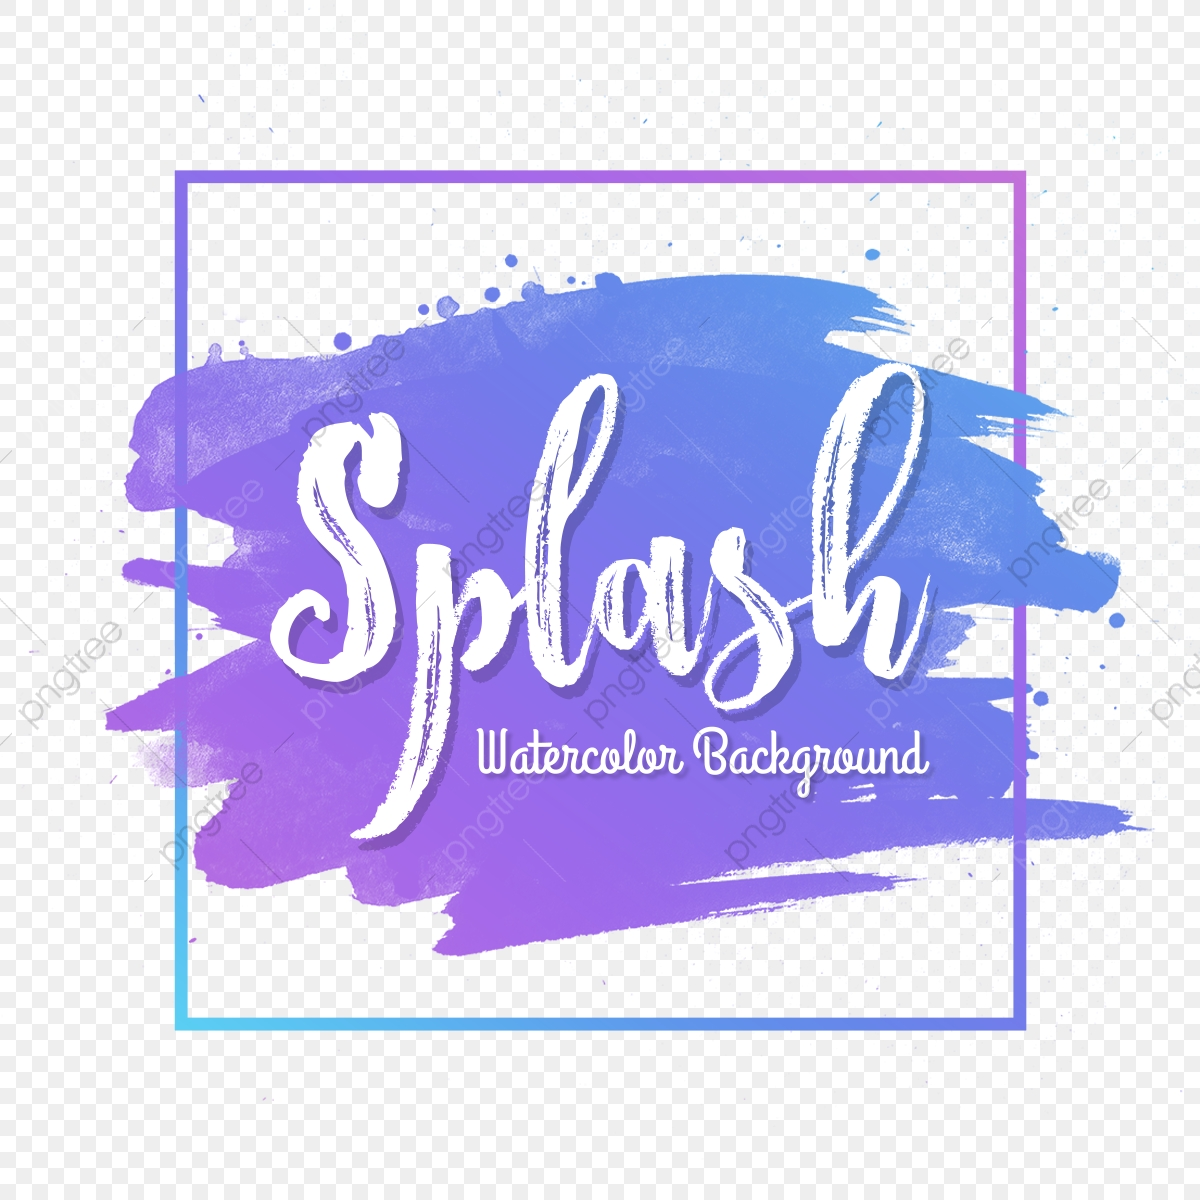 Multicolor Watercolor Brush Background With Trendy Frame